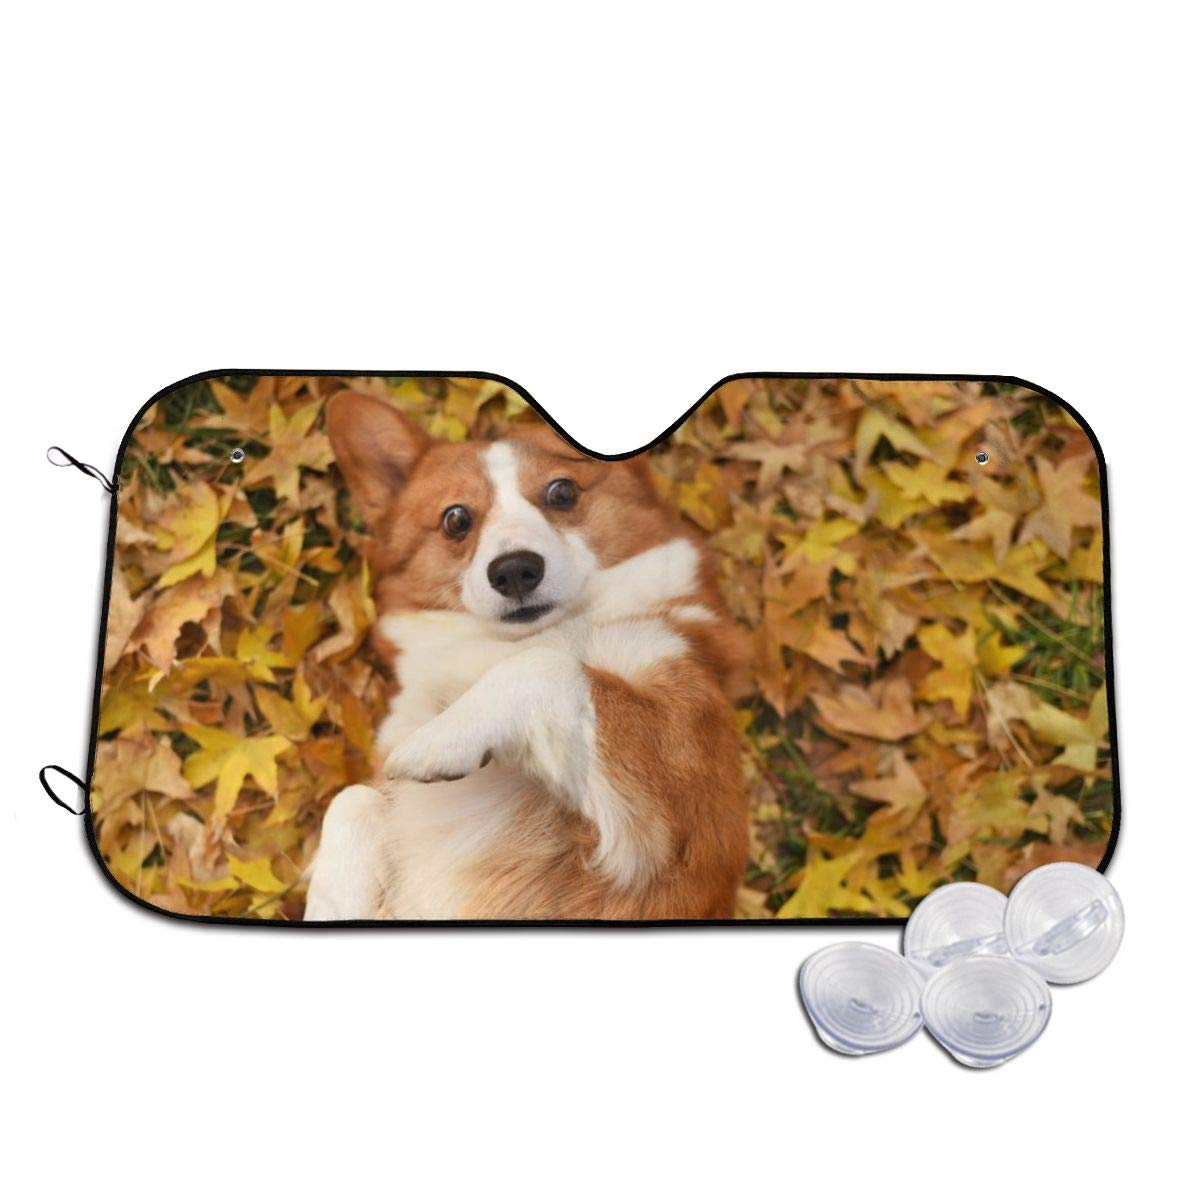 Car Windshield Sunshade Pet 2021new shipping free shipping Dog Protection to Easy-to-use Vehicle C Keep The